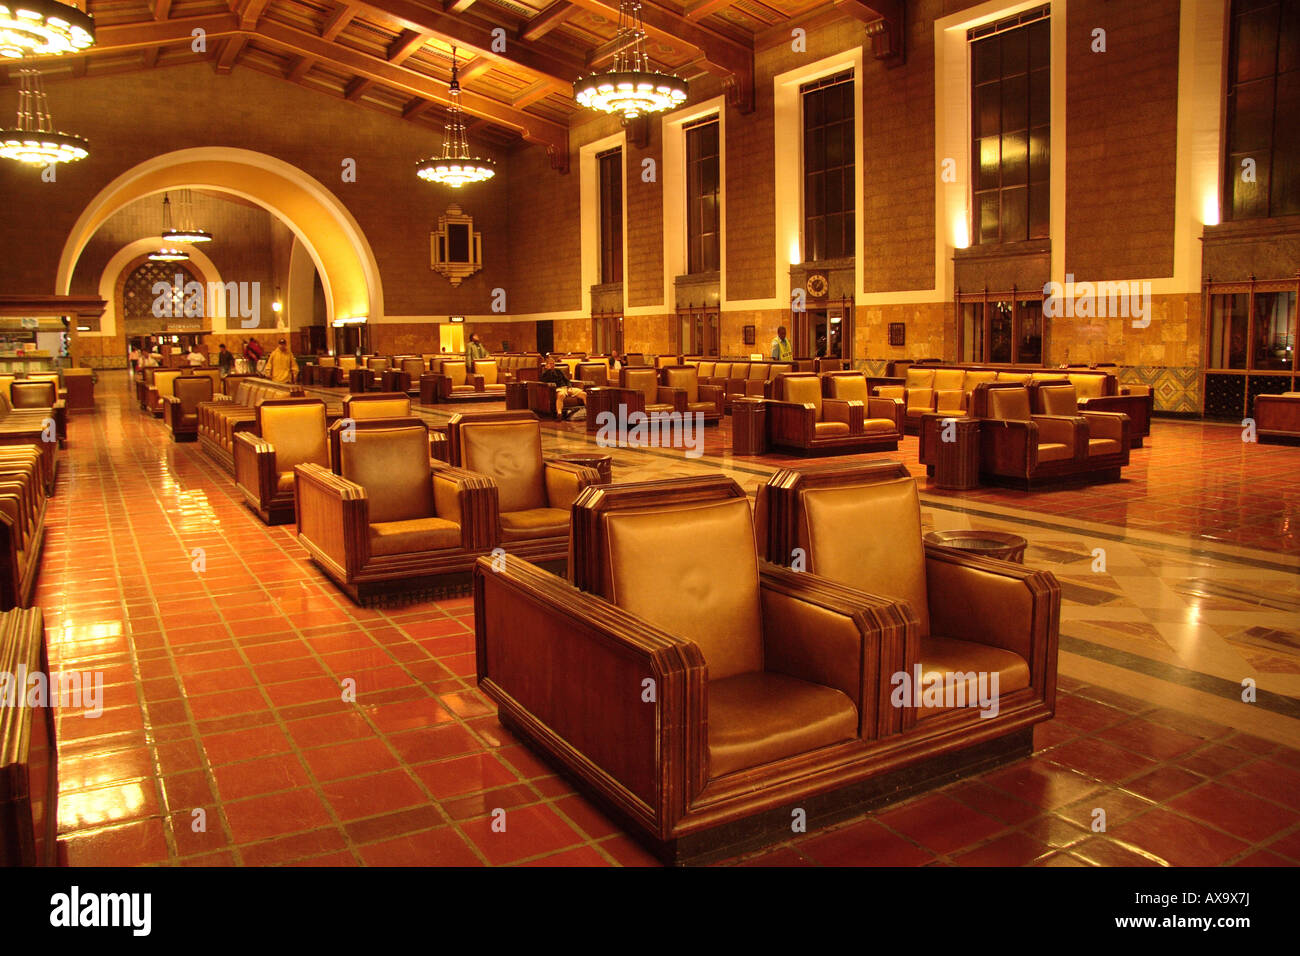 Interior Los Angeles Union Station 1940 decoración del vestíbulo Imagen De Stock